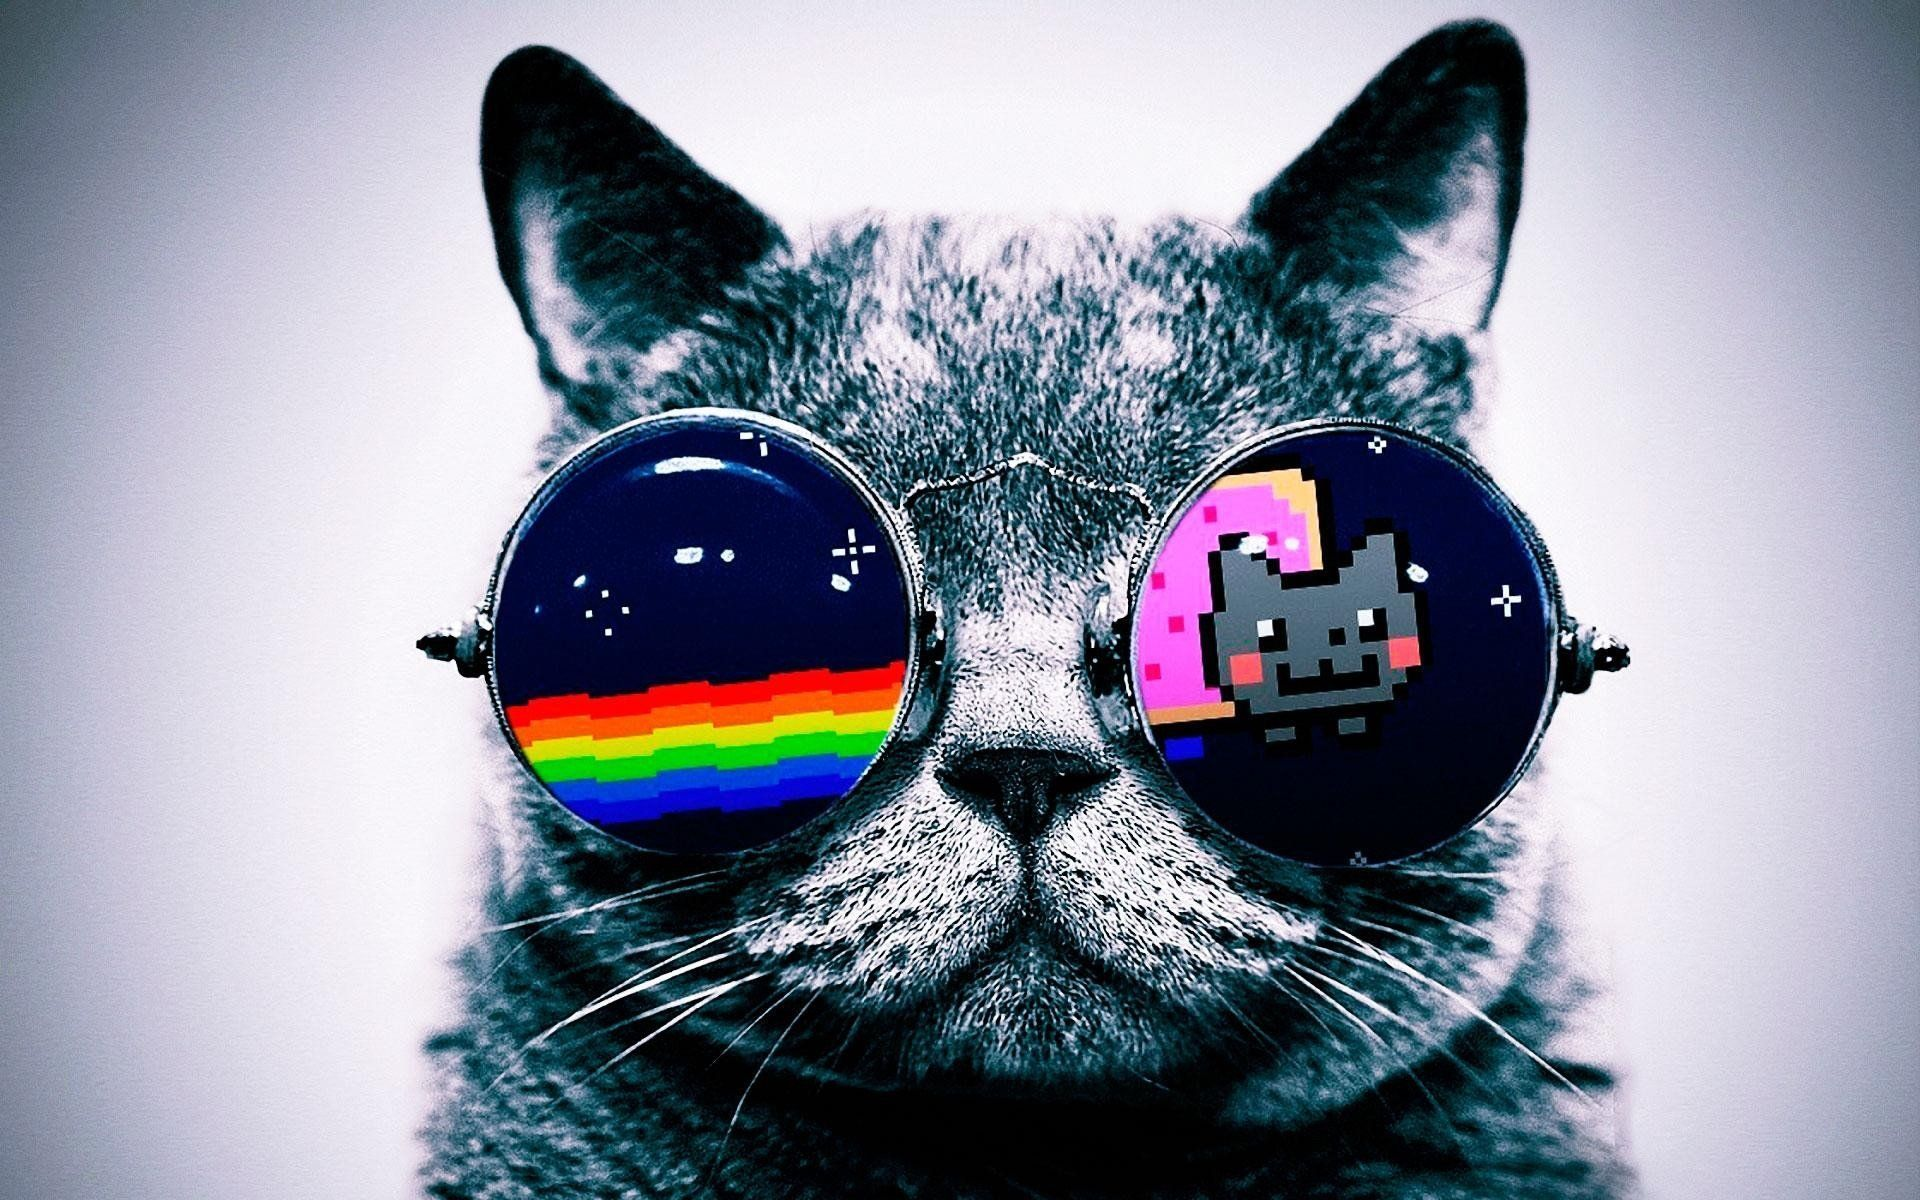 Hipster Cat Wallpapers   Top Hipster Cat Backgrounds 1920x1200